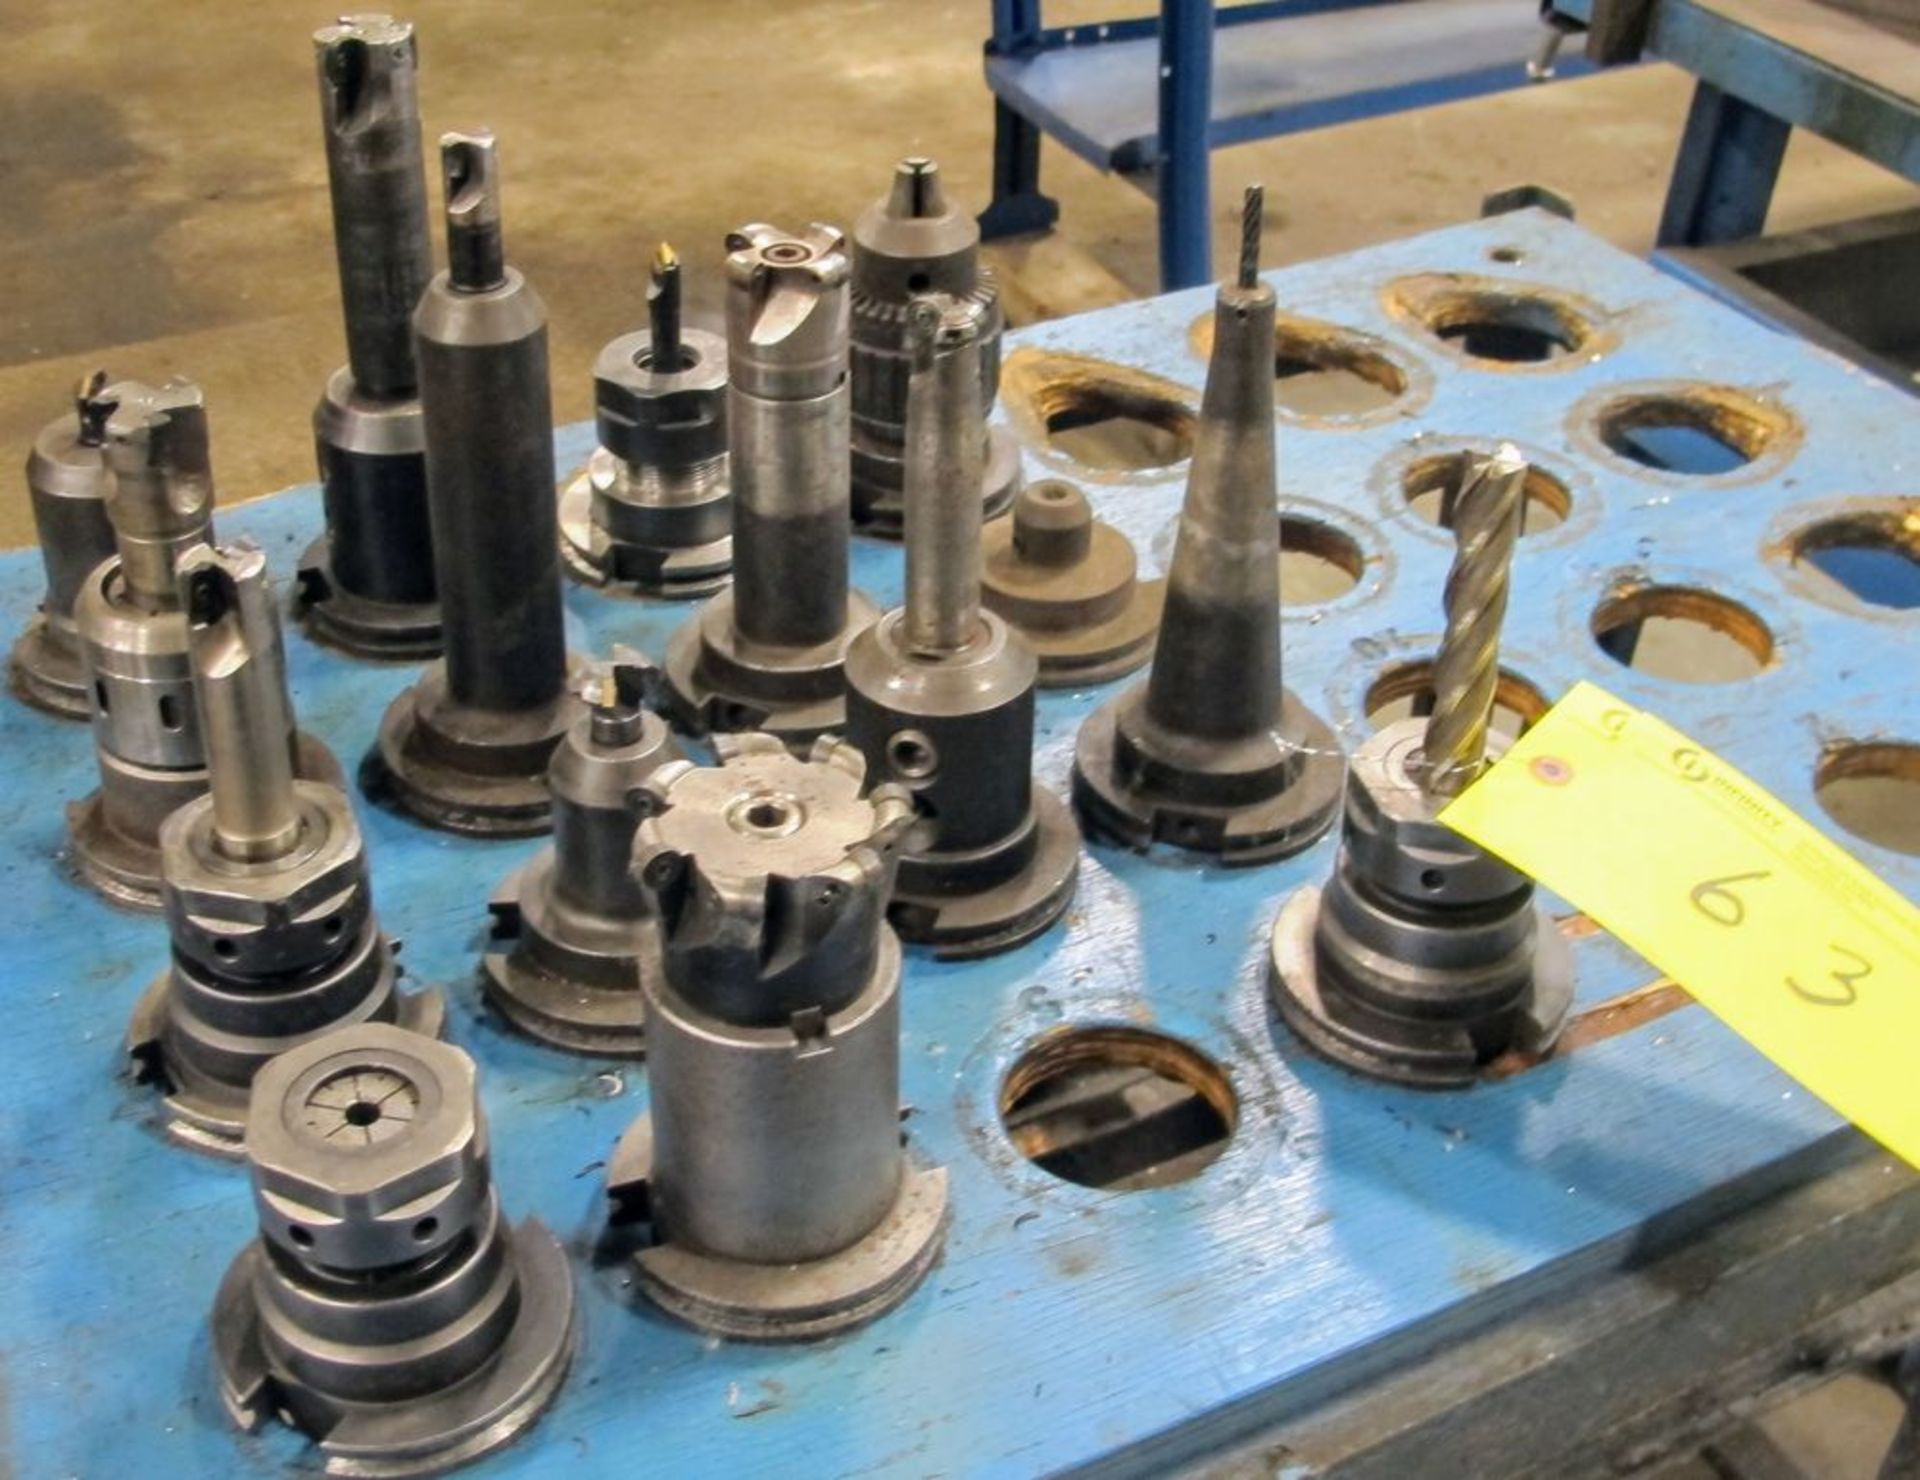 Lot 63 - LOT (15) ASST. CAT50 TOOL HOLDERS W/ TOOLING AND CART